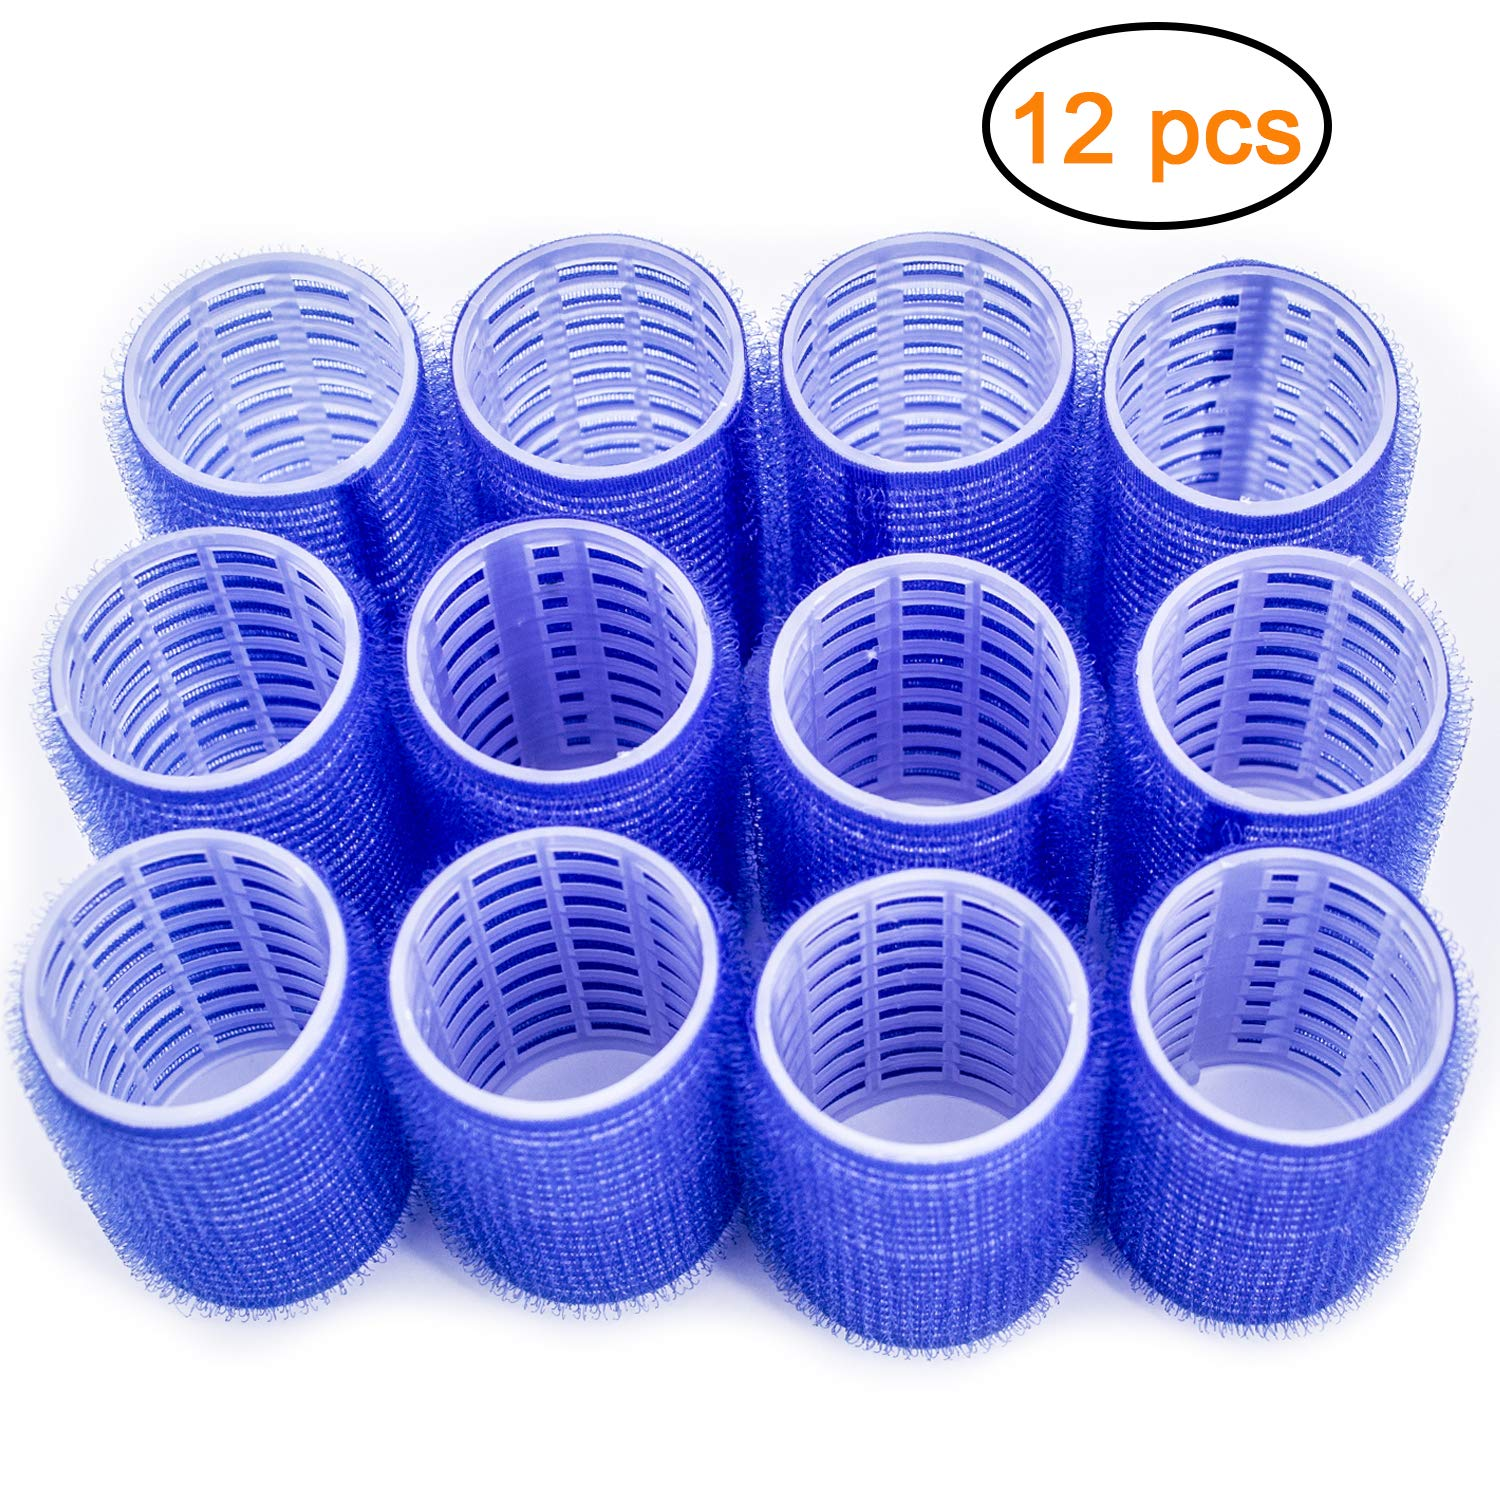 Large Hair Rollers, Self Grip Salon Hairdressing Curlers, DIY Curly Hairstyle, (Colors May Vary), 12 Pack